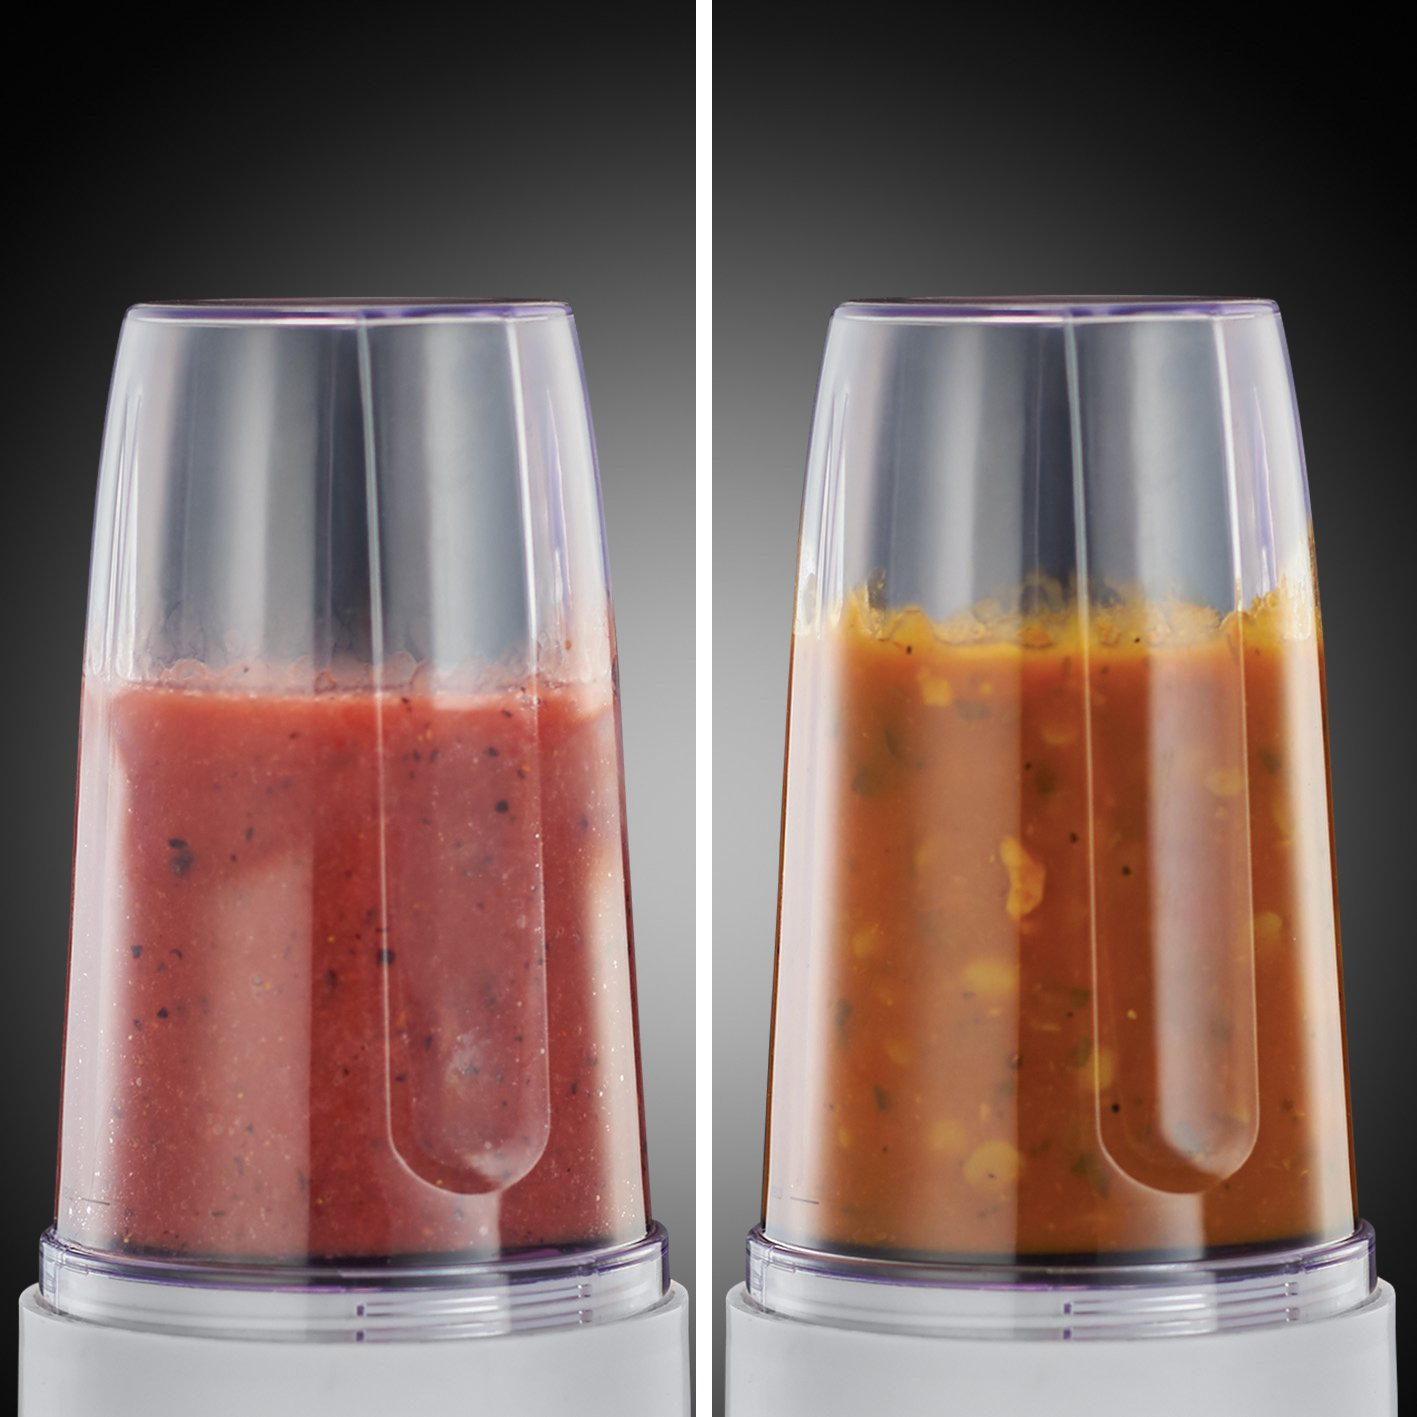 Russell Hobbs 3-in-1 Juicer, Press and Blender 4